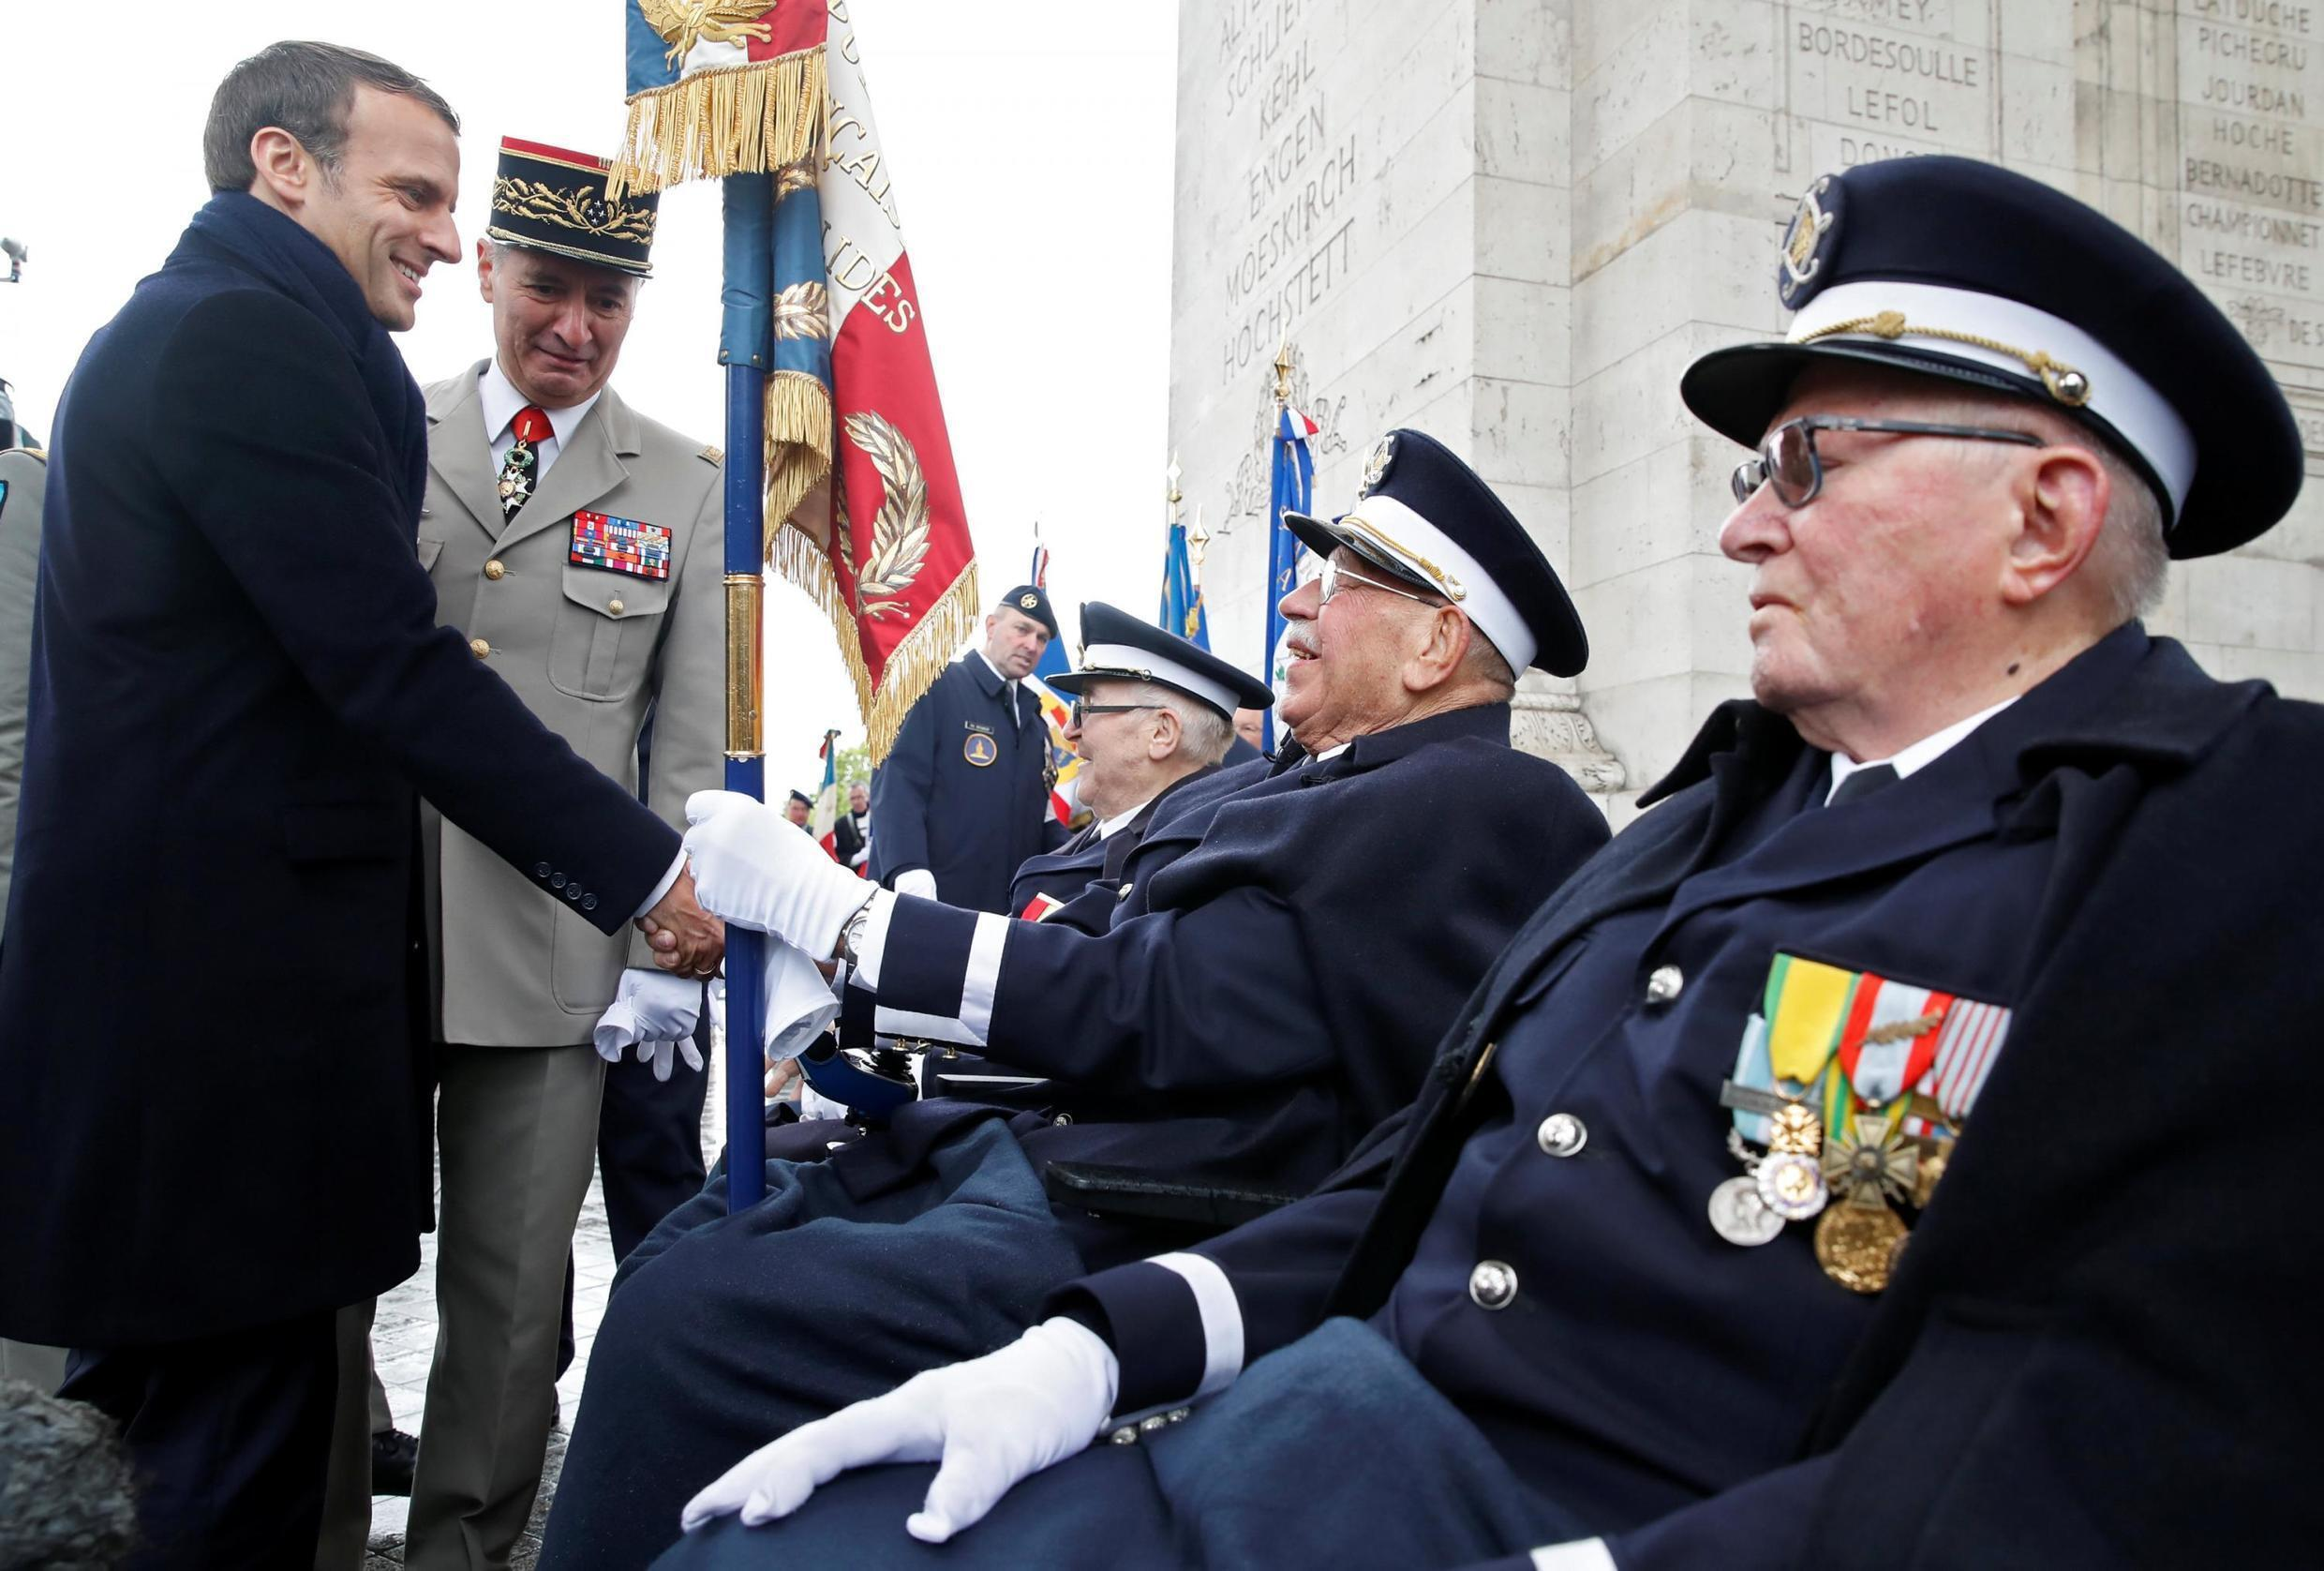 French President Emmanuel Macron greets veterans during a ceremony to mark the end of World War II at the Arc de Triomphe in Paris.